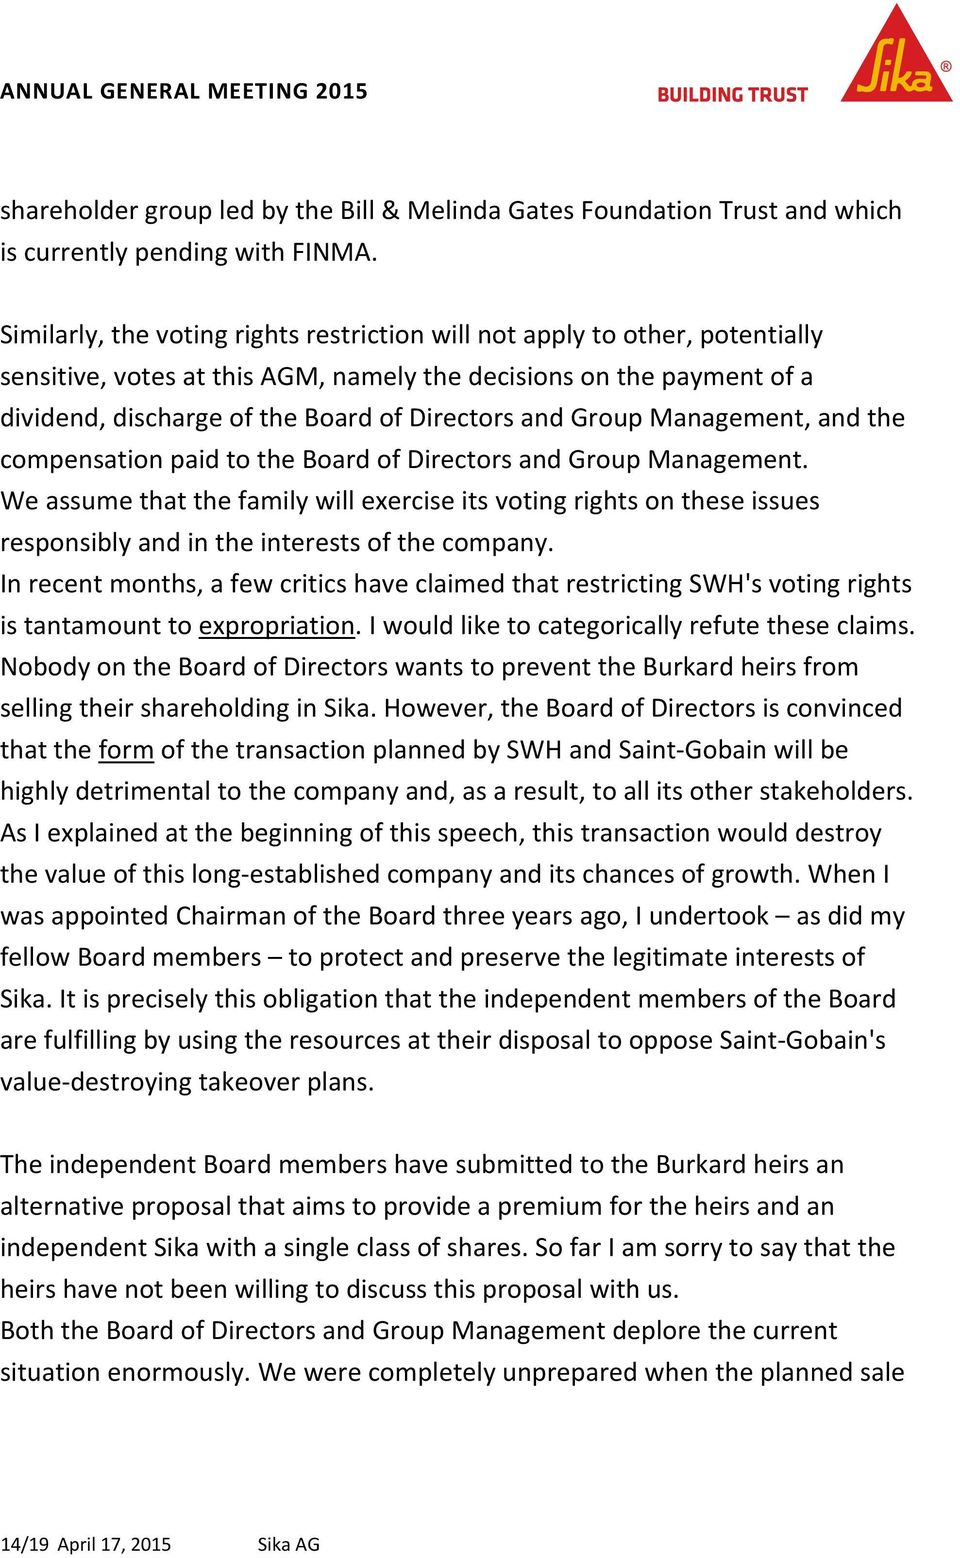 Group Management, and the compensation paid to the Board of Directors and Group Management.